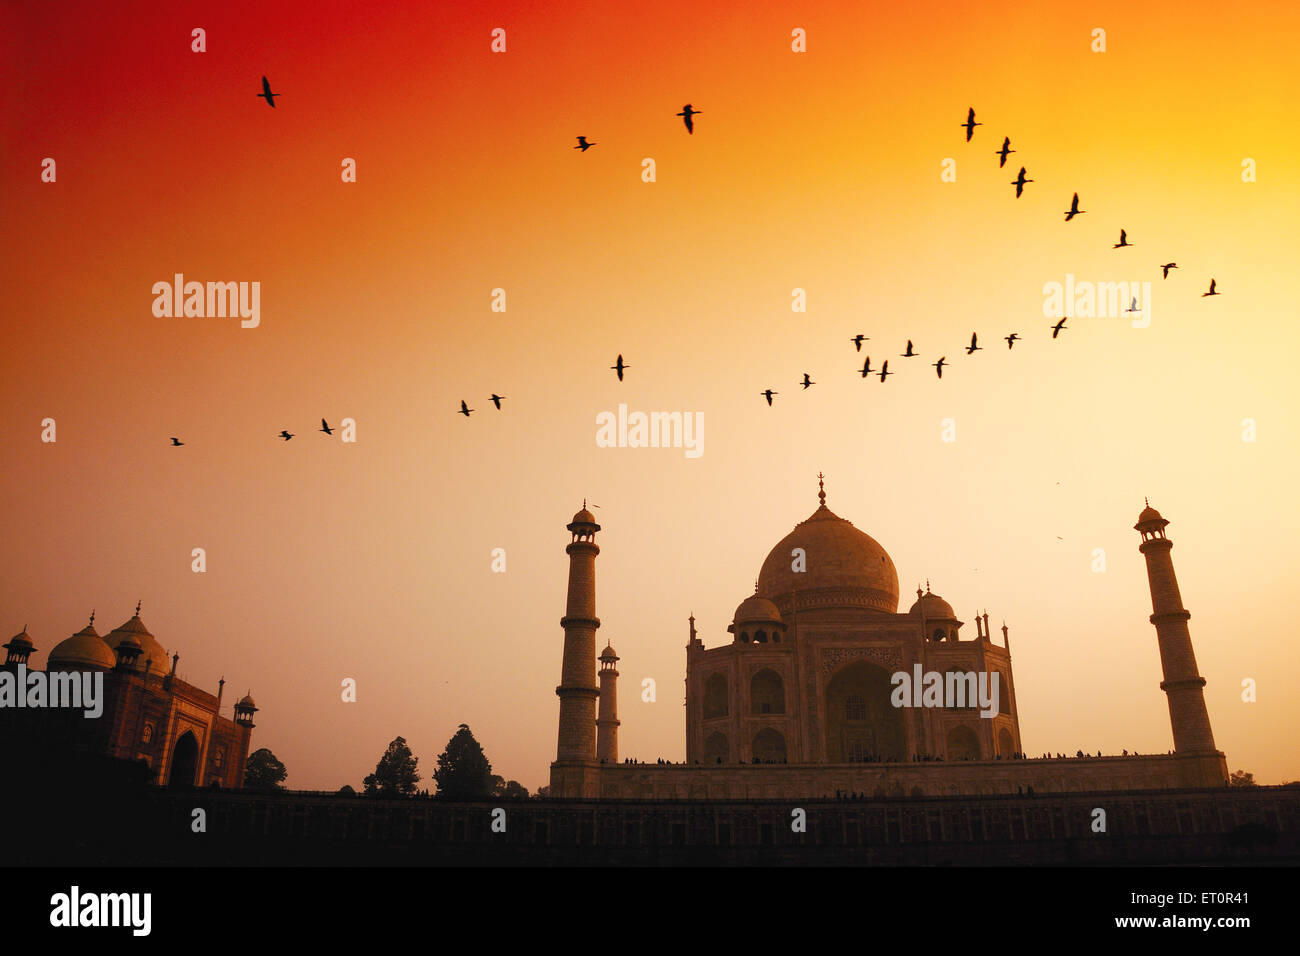 Birds flying in sky over Taj Mahal at sunset ; Agra ; Uttar Pradesh ; India - Stock Image